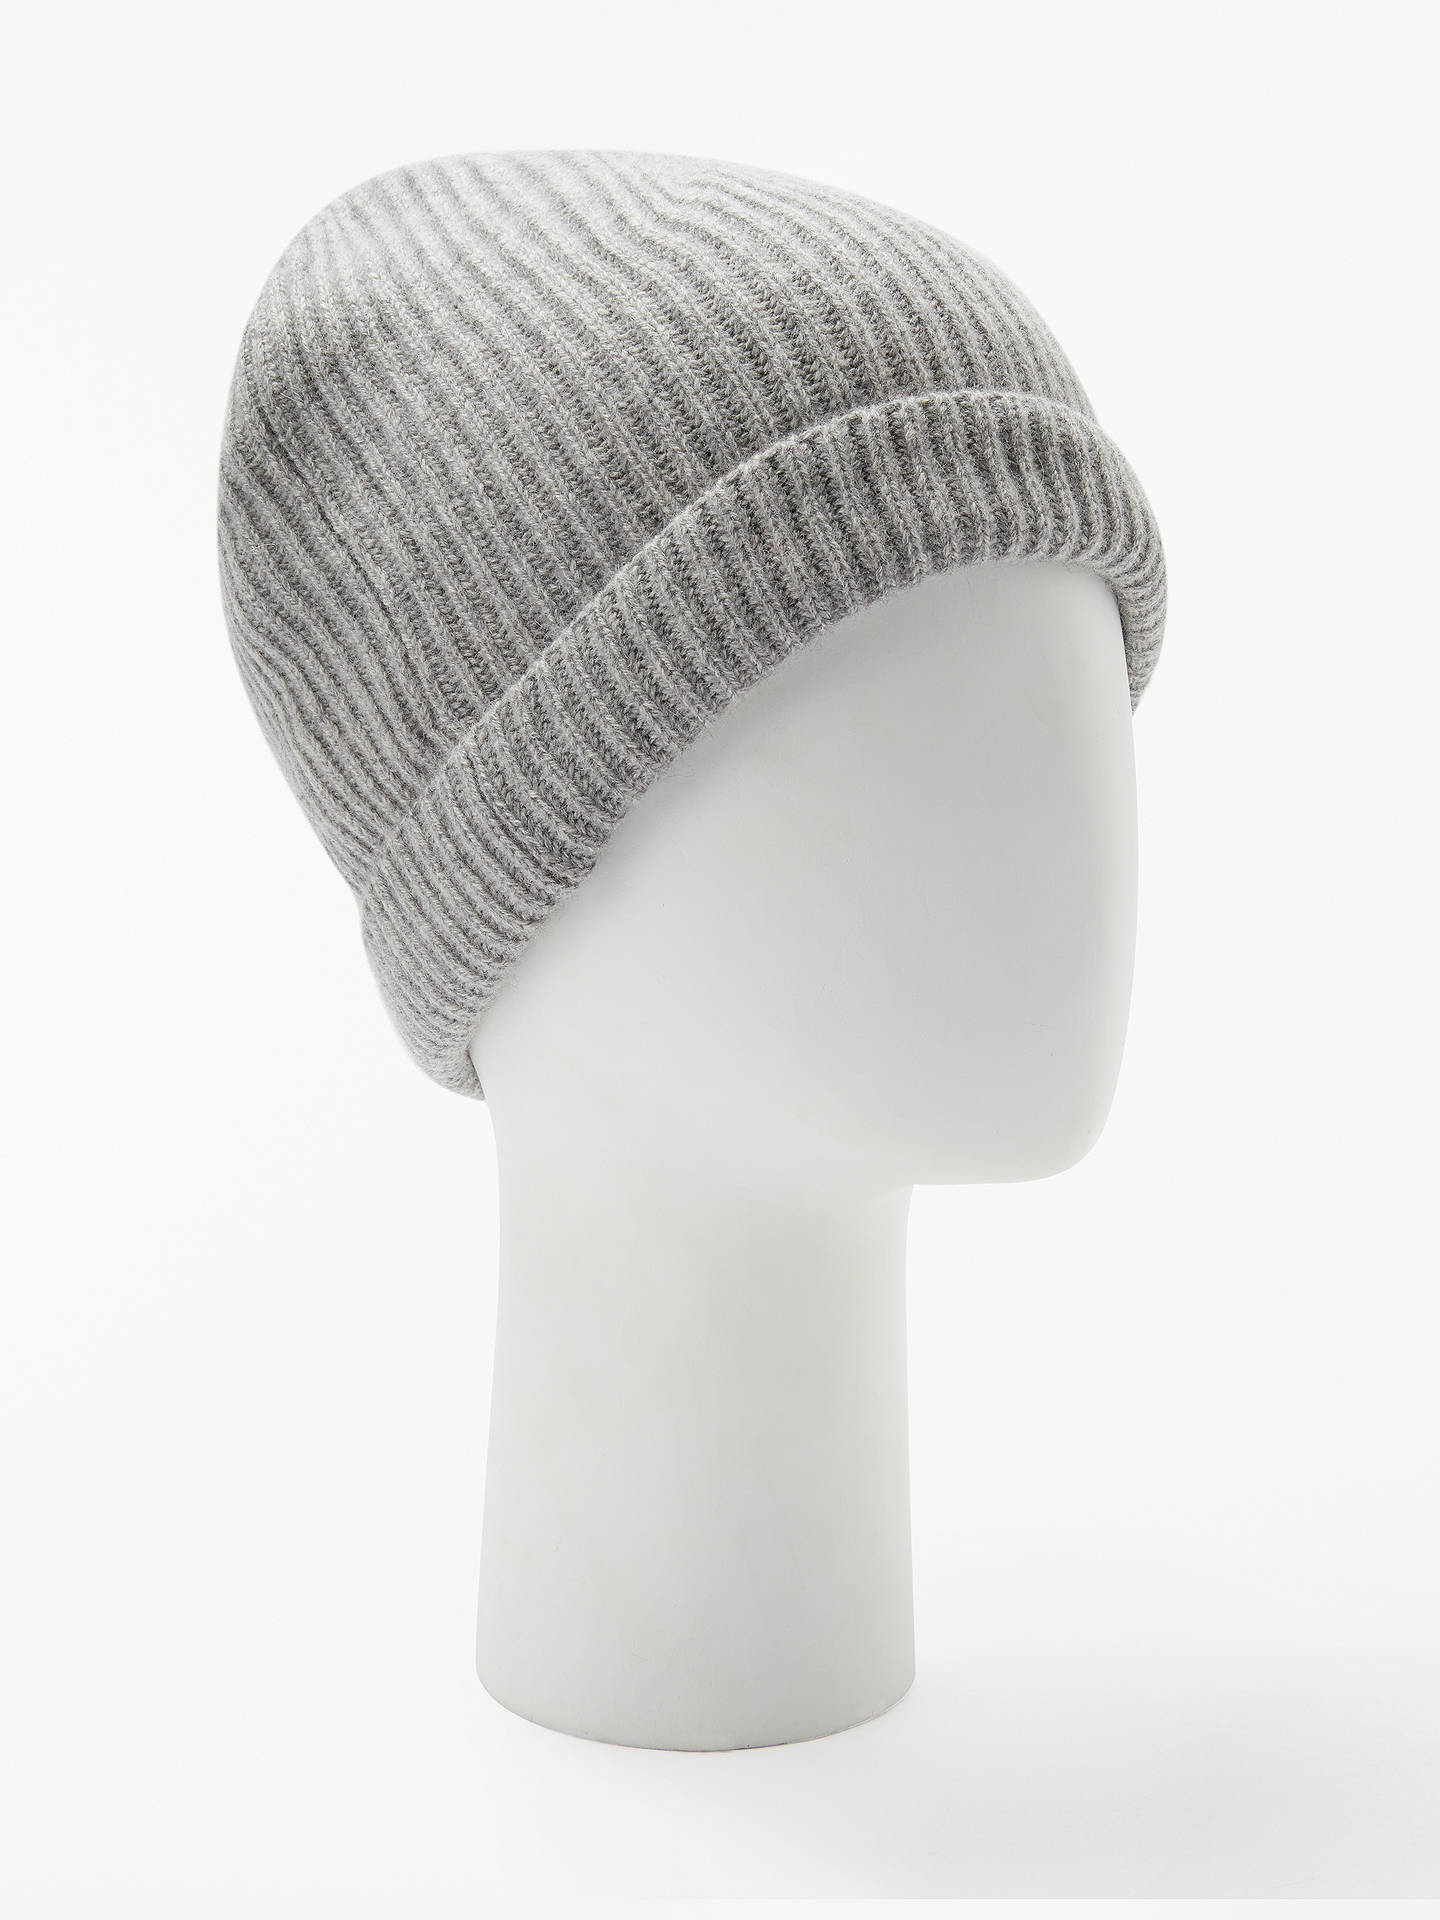 555141bfbf3 Buy John Lewis   Partners Italian Cashmere Ribbed Beanie Hat